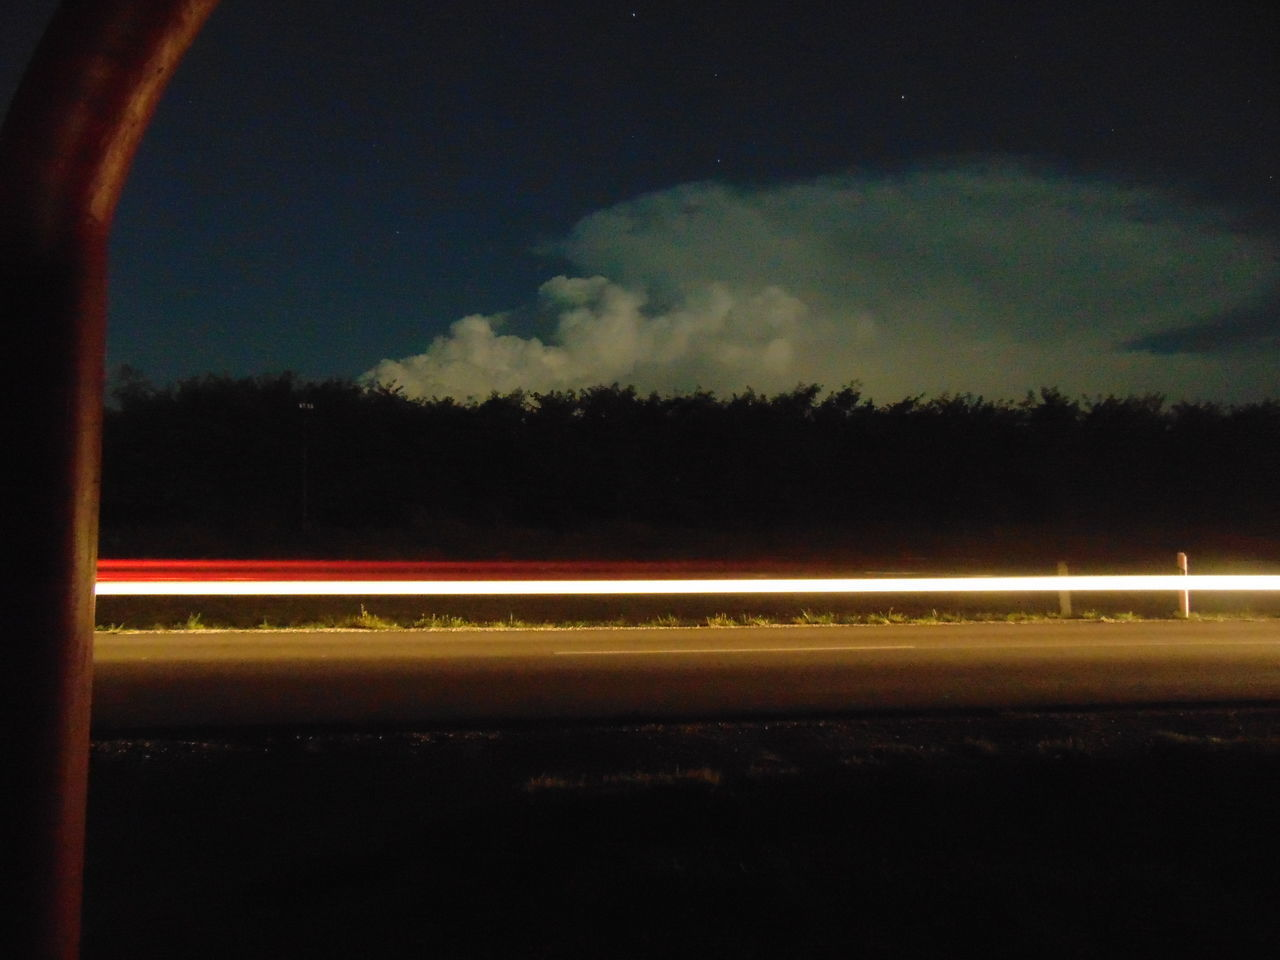 sky, cloud - sky, long exposure, transportation, speed, motion, night, illuminated, light trail, blurred motion, no people, nature, road, architecture, outdoors, city, mode of transportation, tree, dusk, street